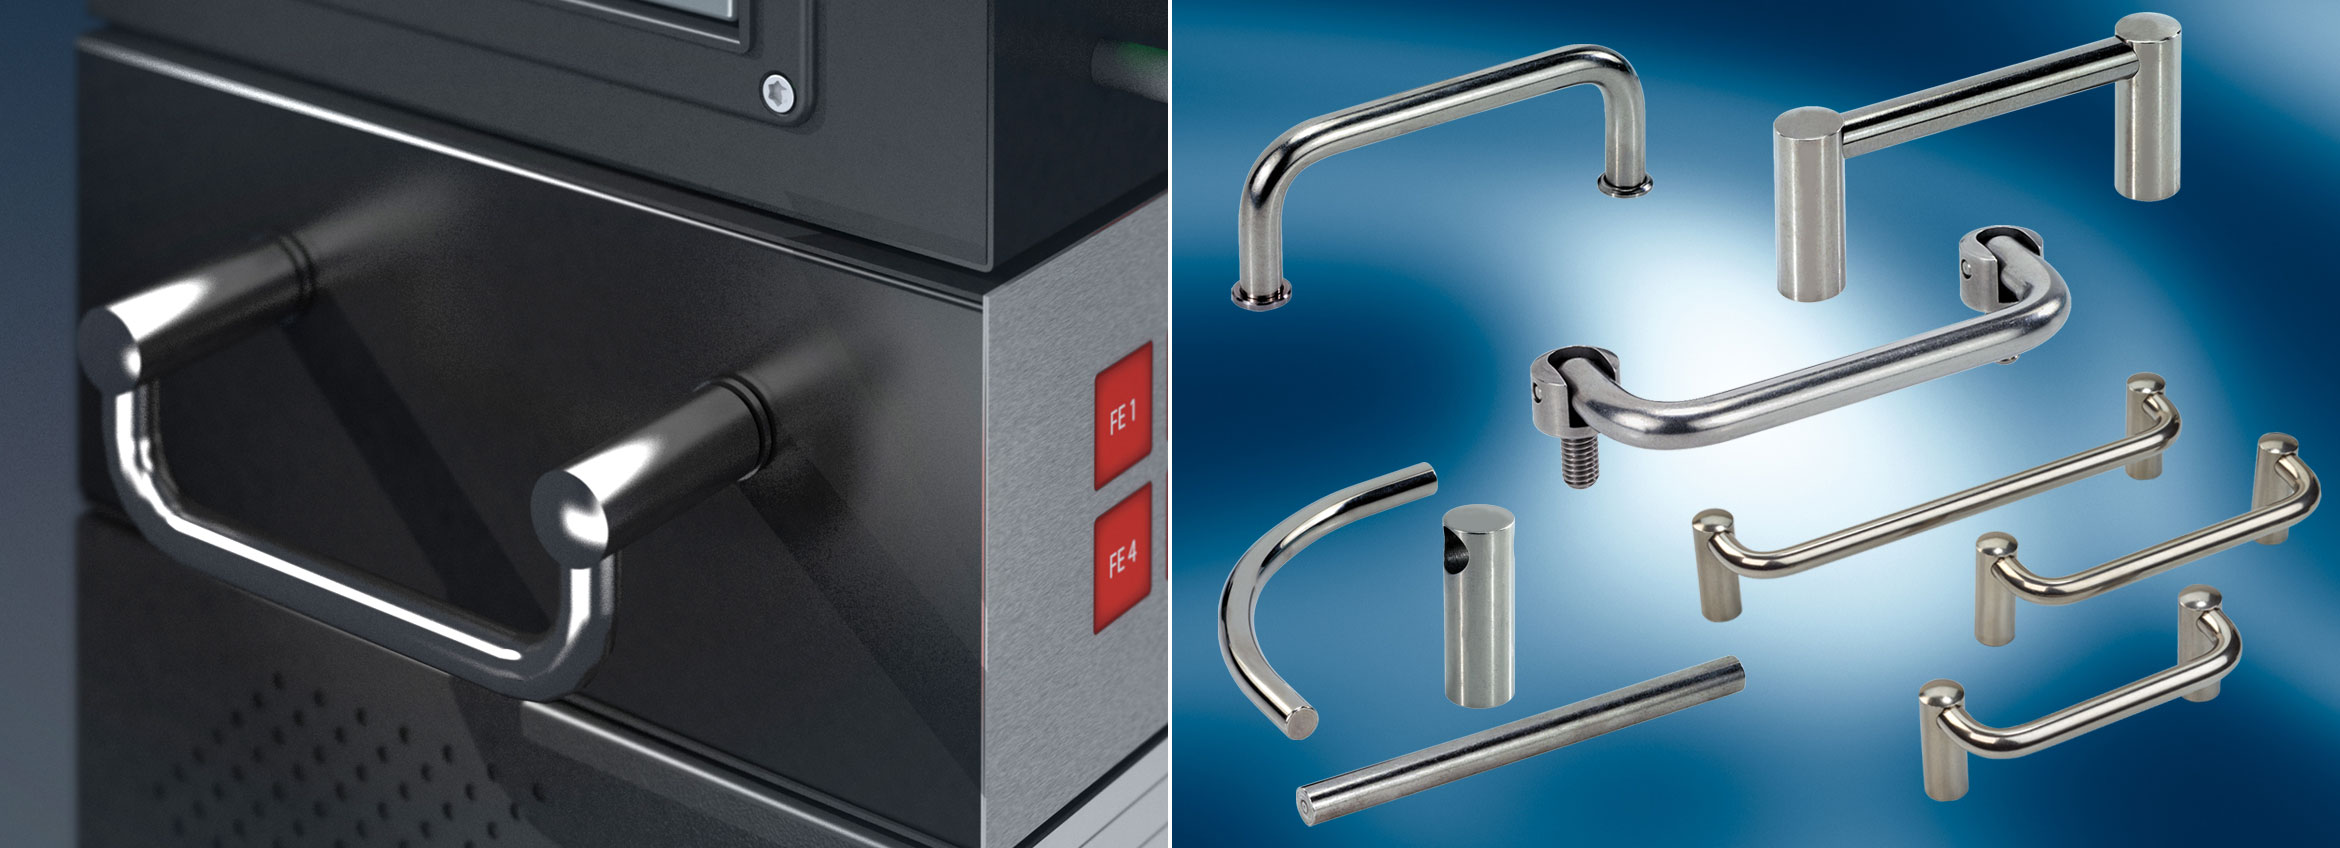 MENTOR's range of Stainless Steel Handles